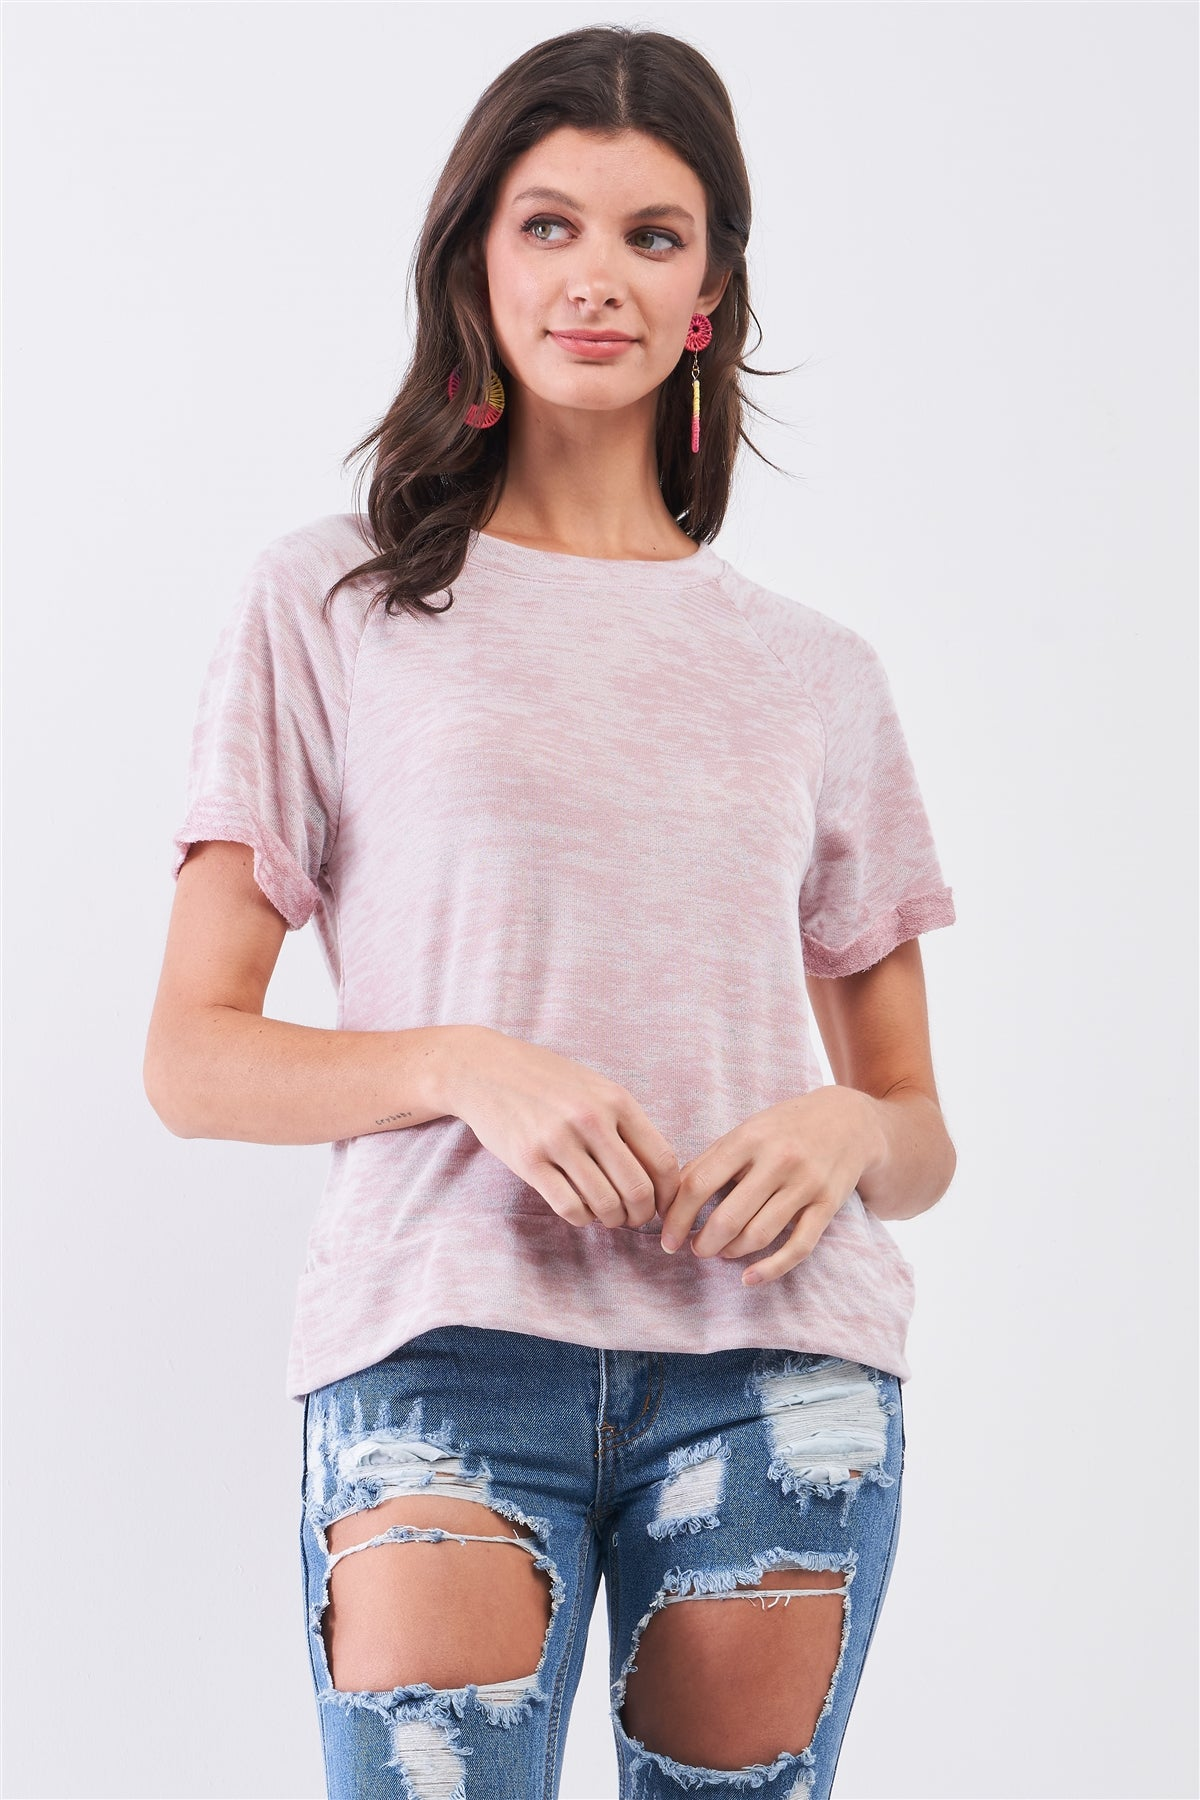 Short Folded Sleeve Round Neck Relaxed Fit T-shirt Top - Shalaunie's Closet